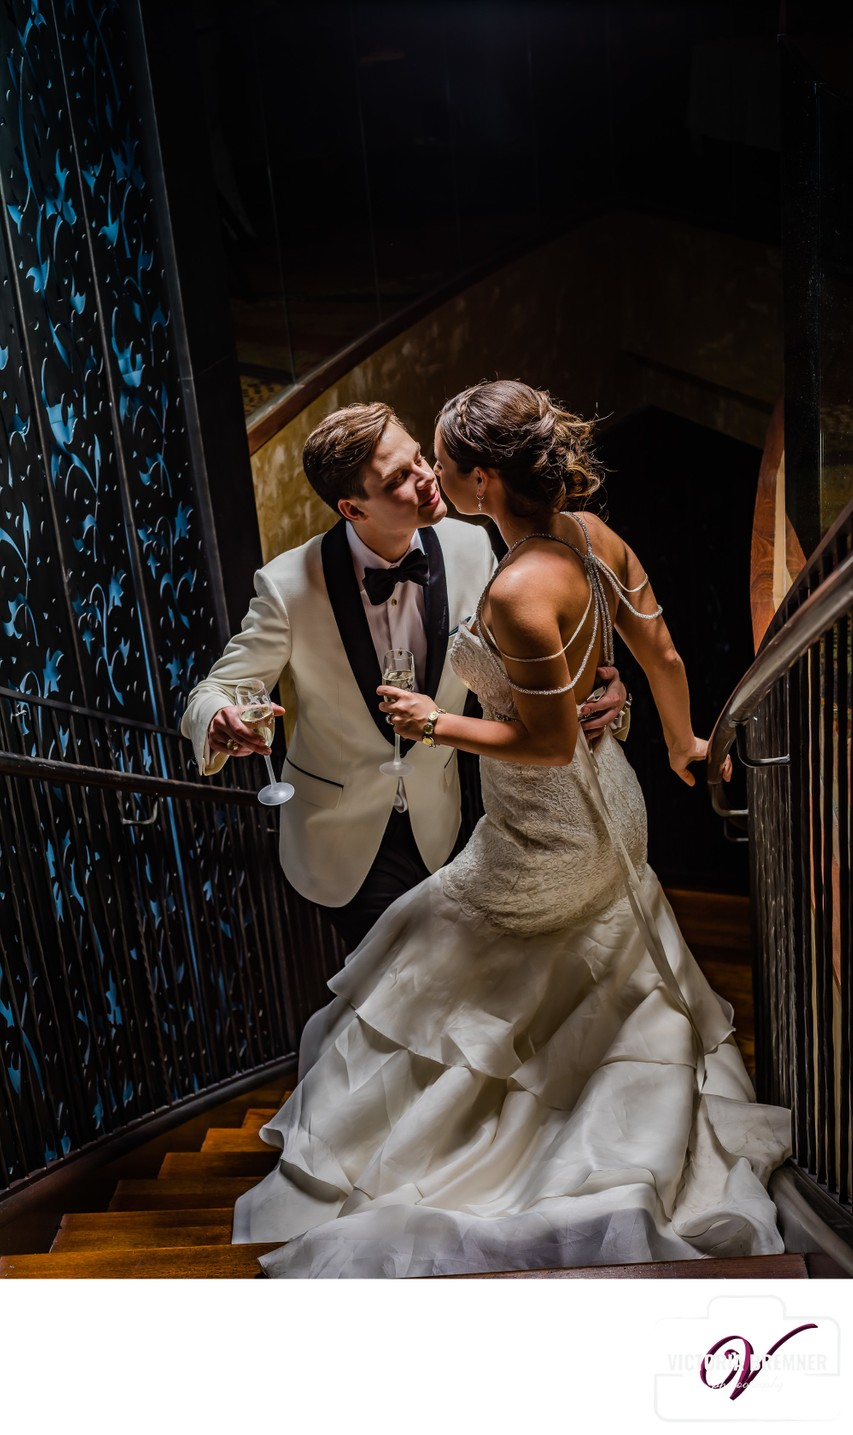 Wedding Photo at Trevi Stairway Caesars Forums Shops